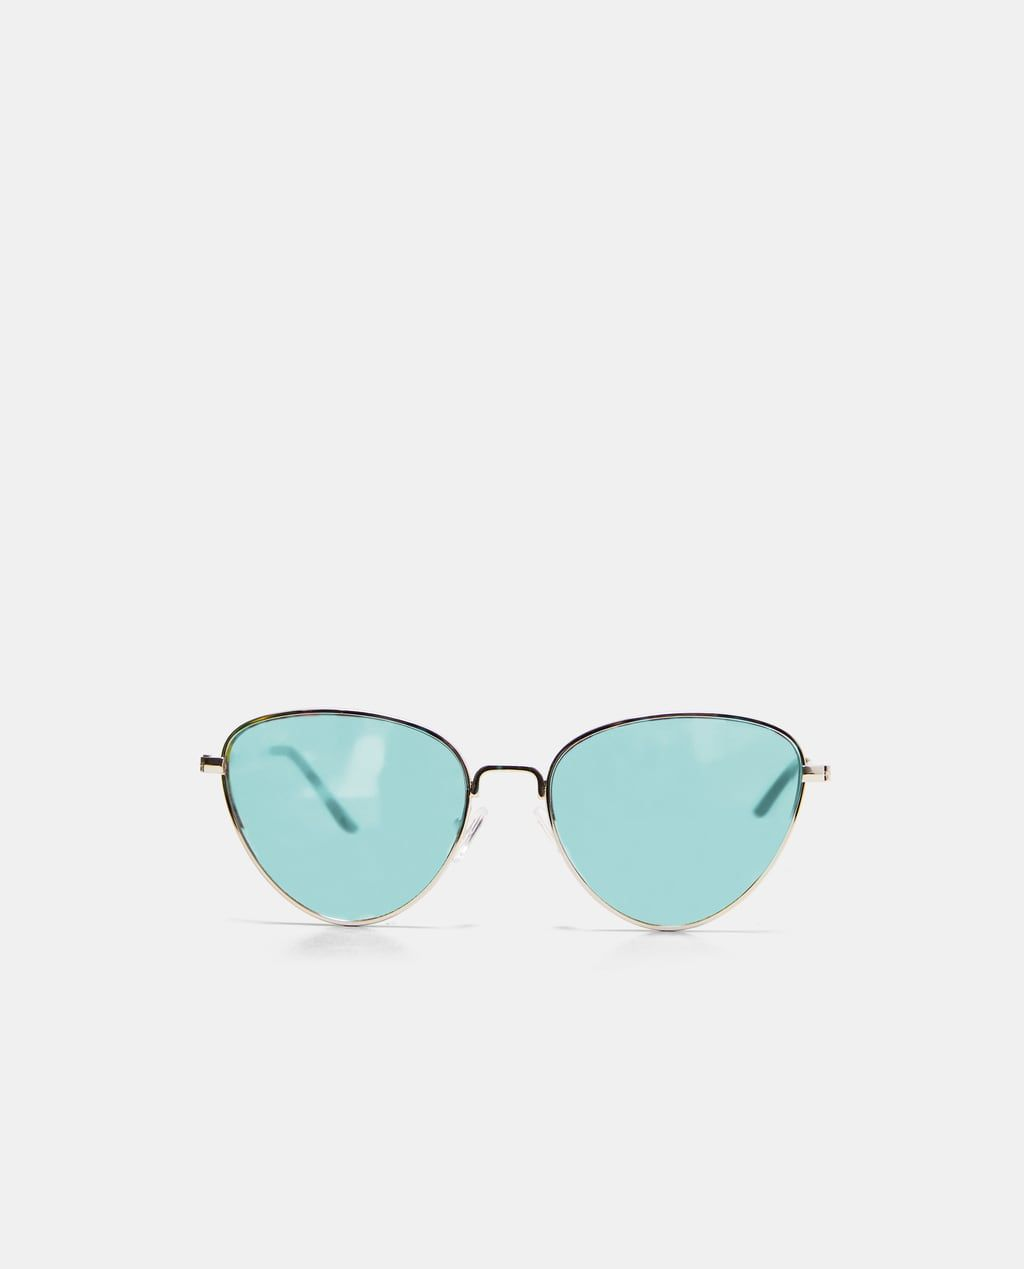 4f5322be2c Image 1 of METALLIC SUNGLASSES WITH COLOURED LENSES from Zara Accesorios,  Cristales, Accesorios Para